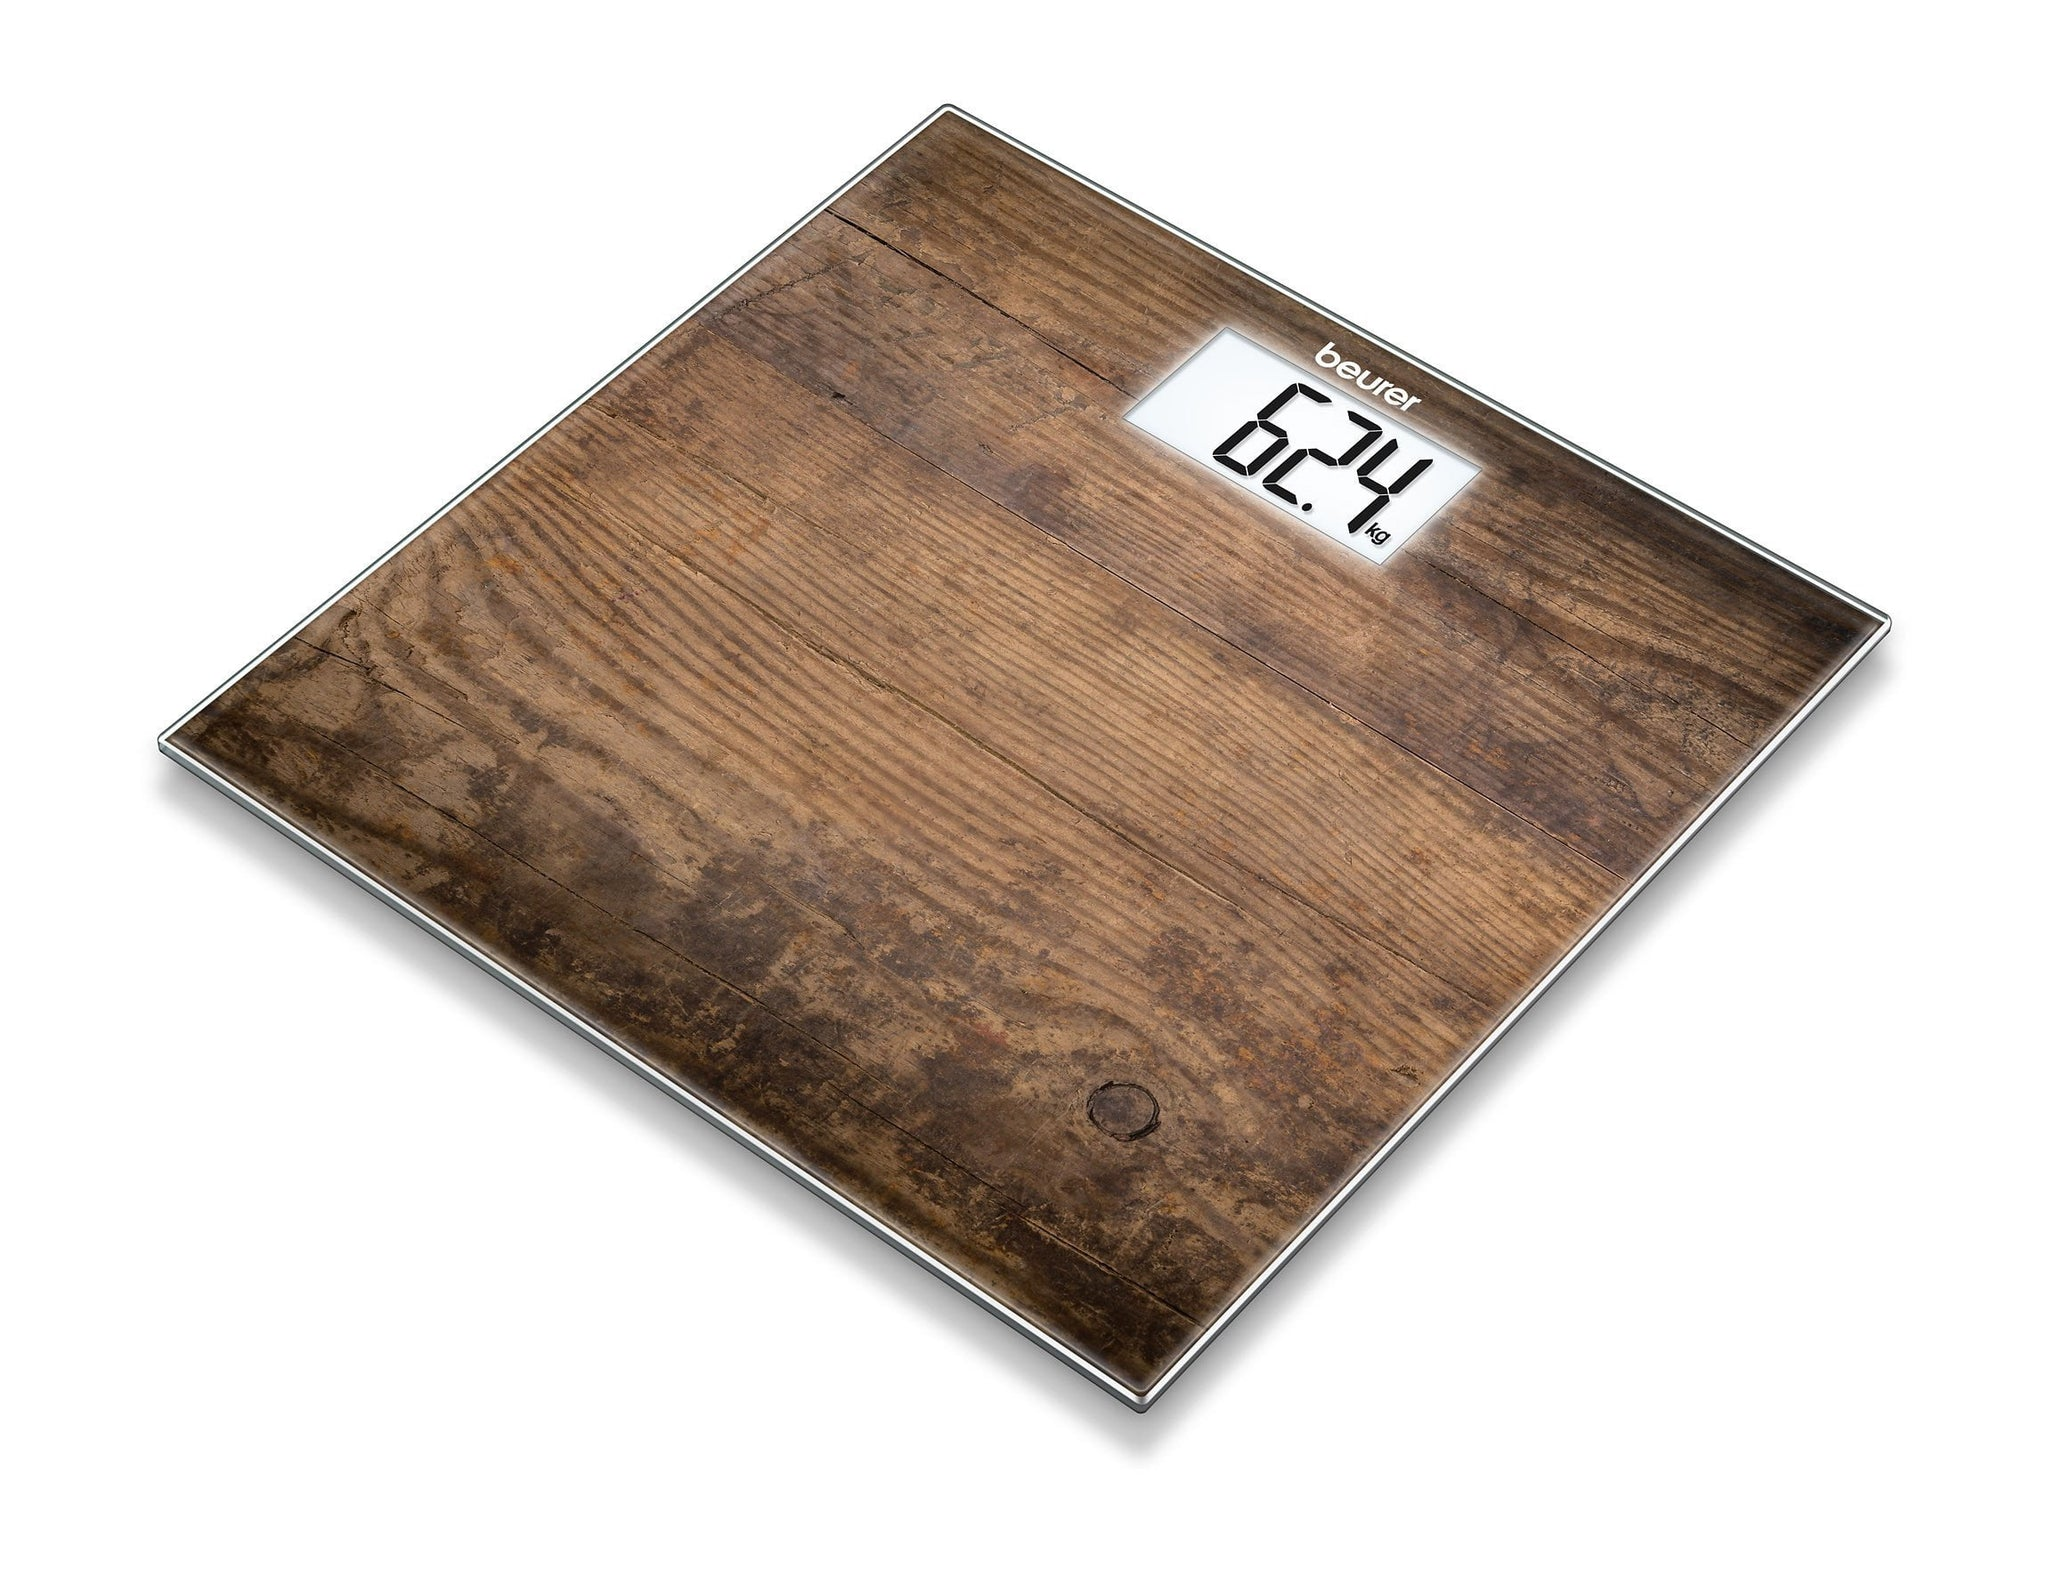 Beurer Glass Bathroom Scale GS 203 - Wood